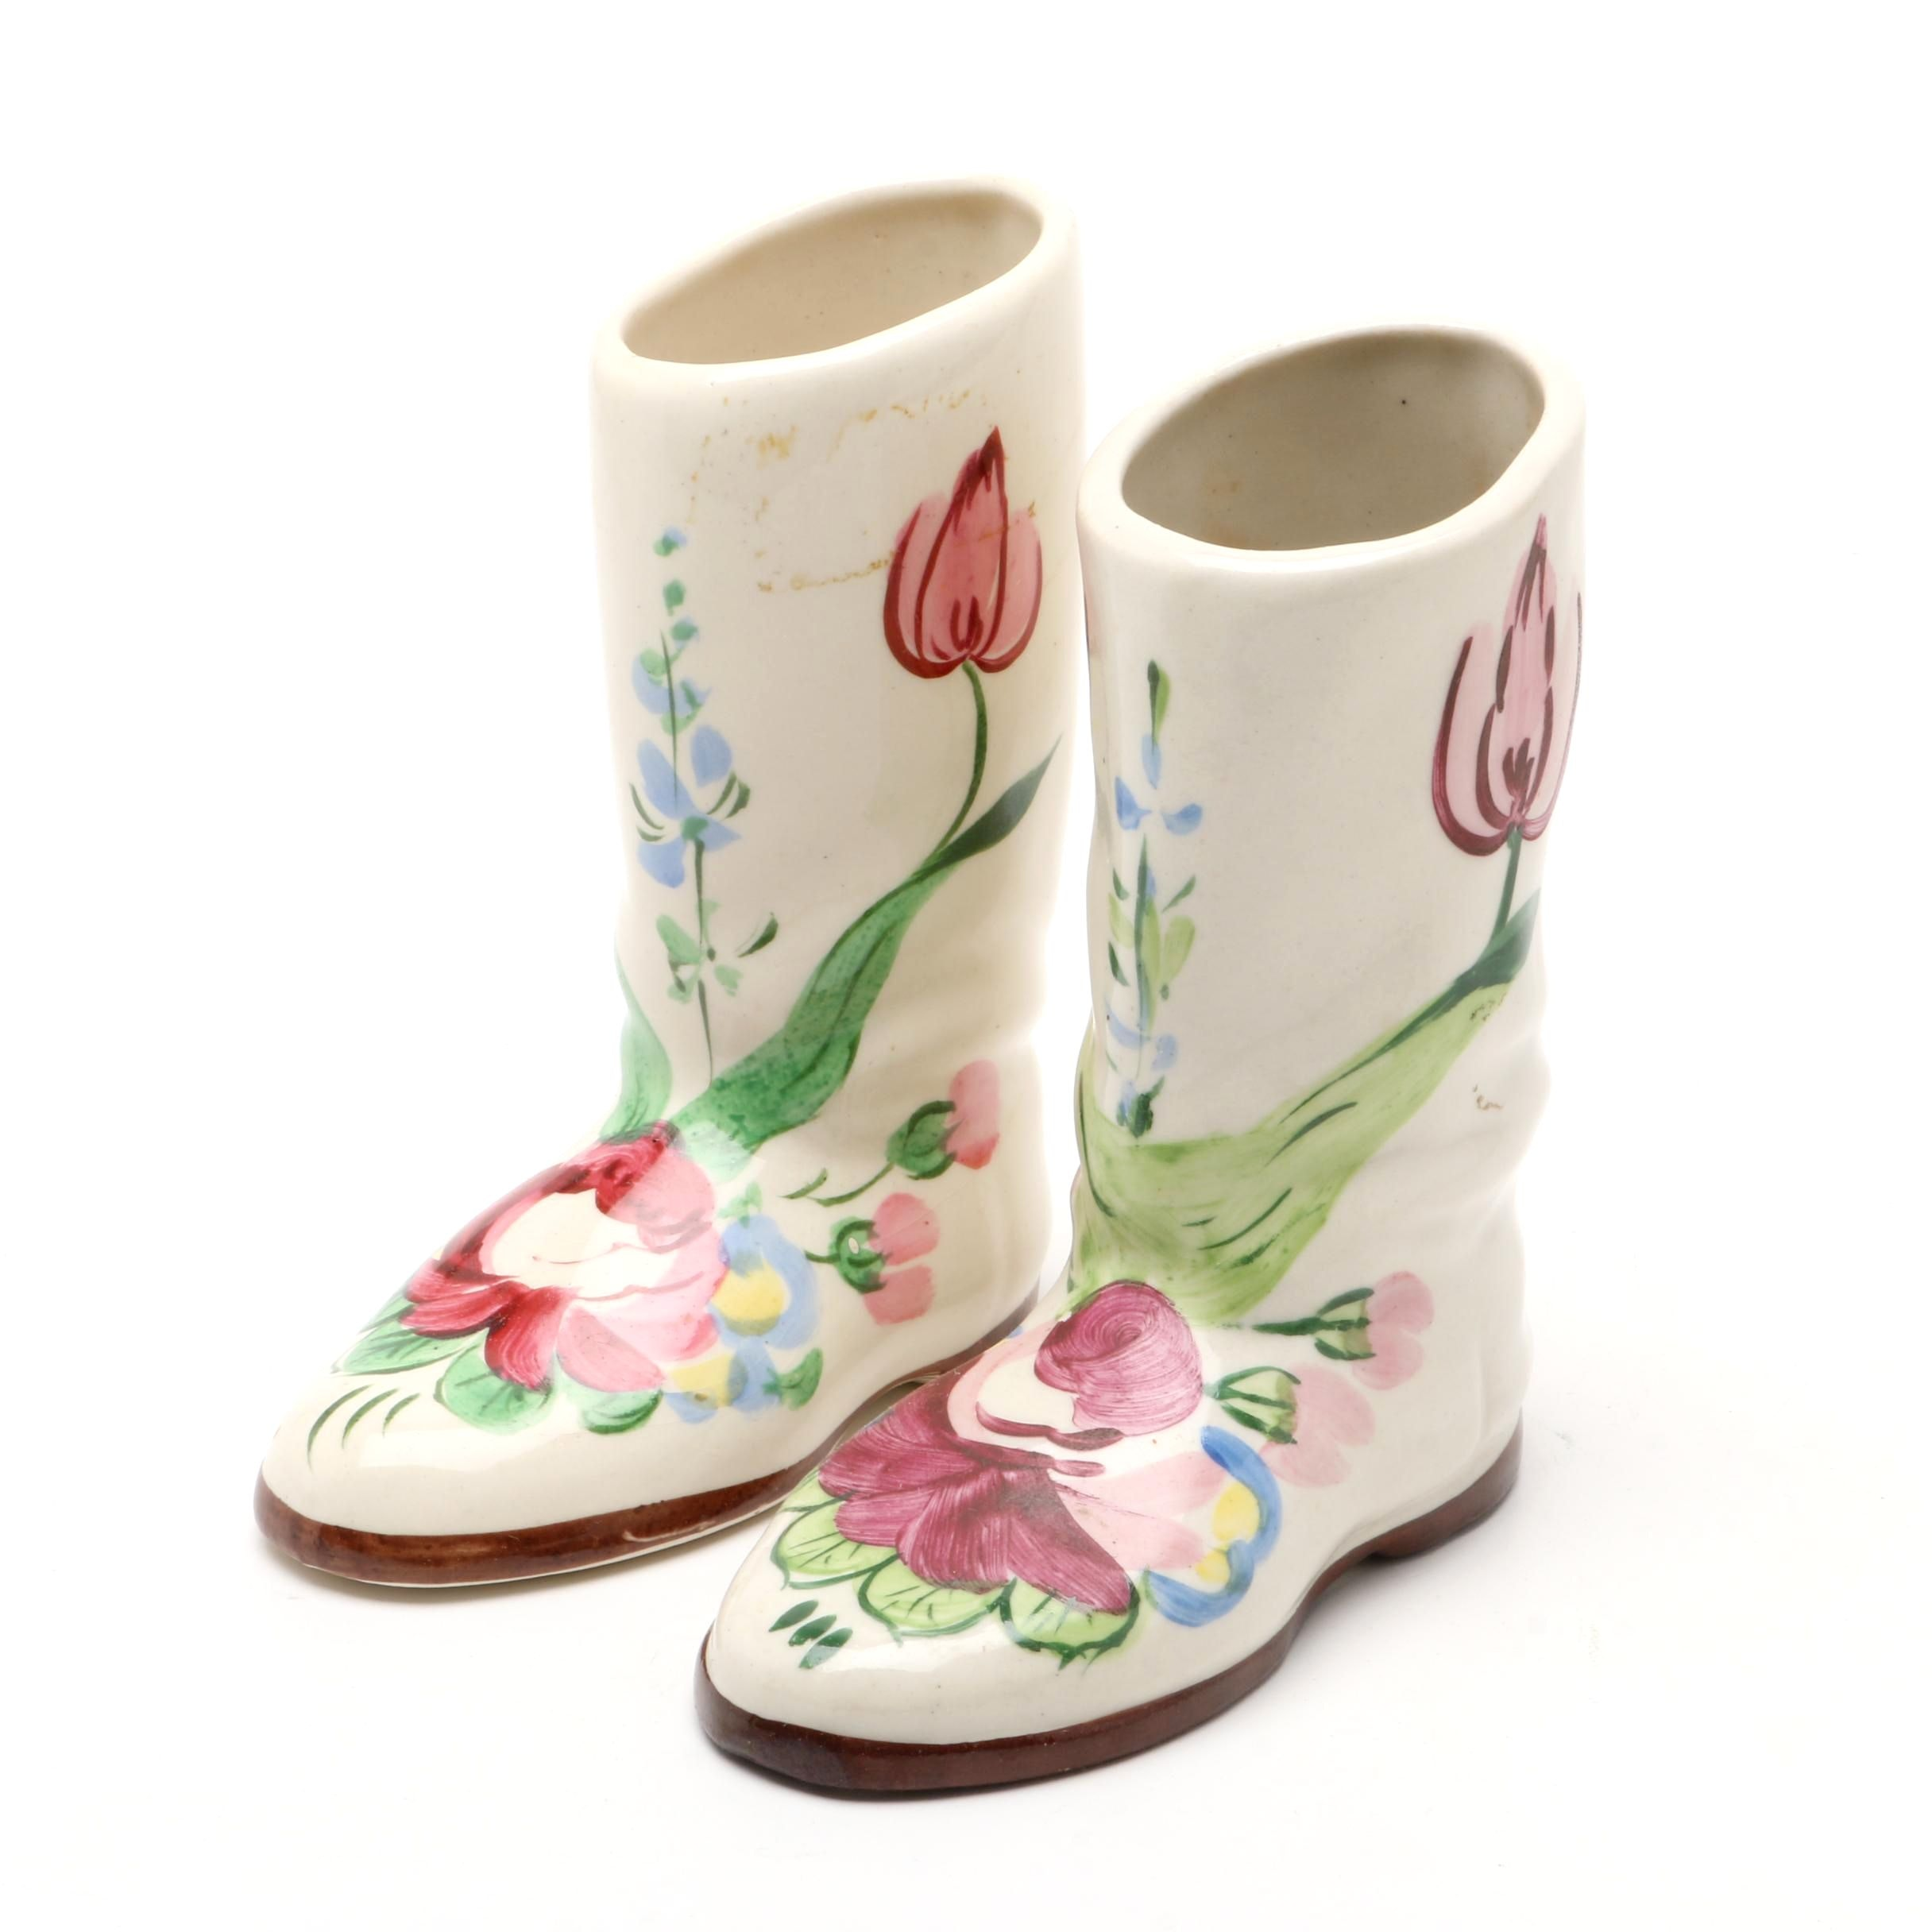 Vintage Hand-Painted Ceramic Boot Vases in the Style of Blue Ridge Pottery